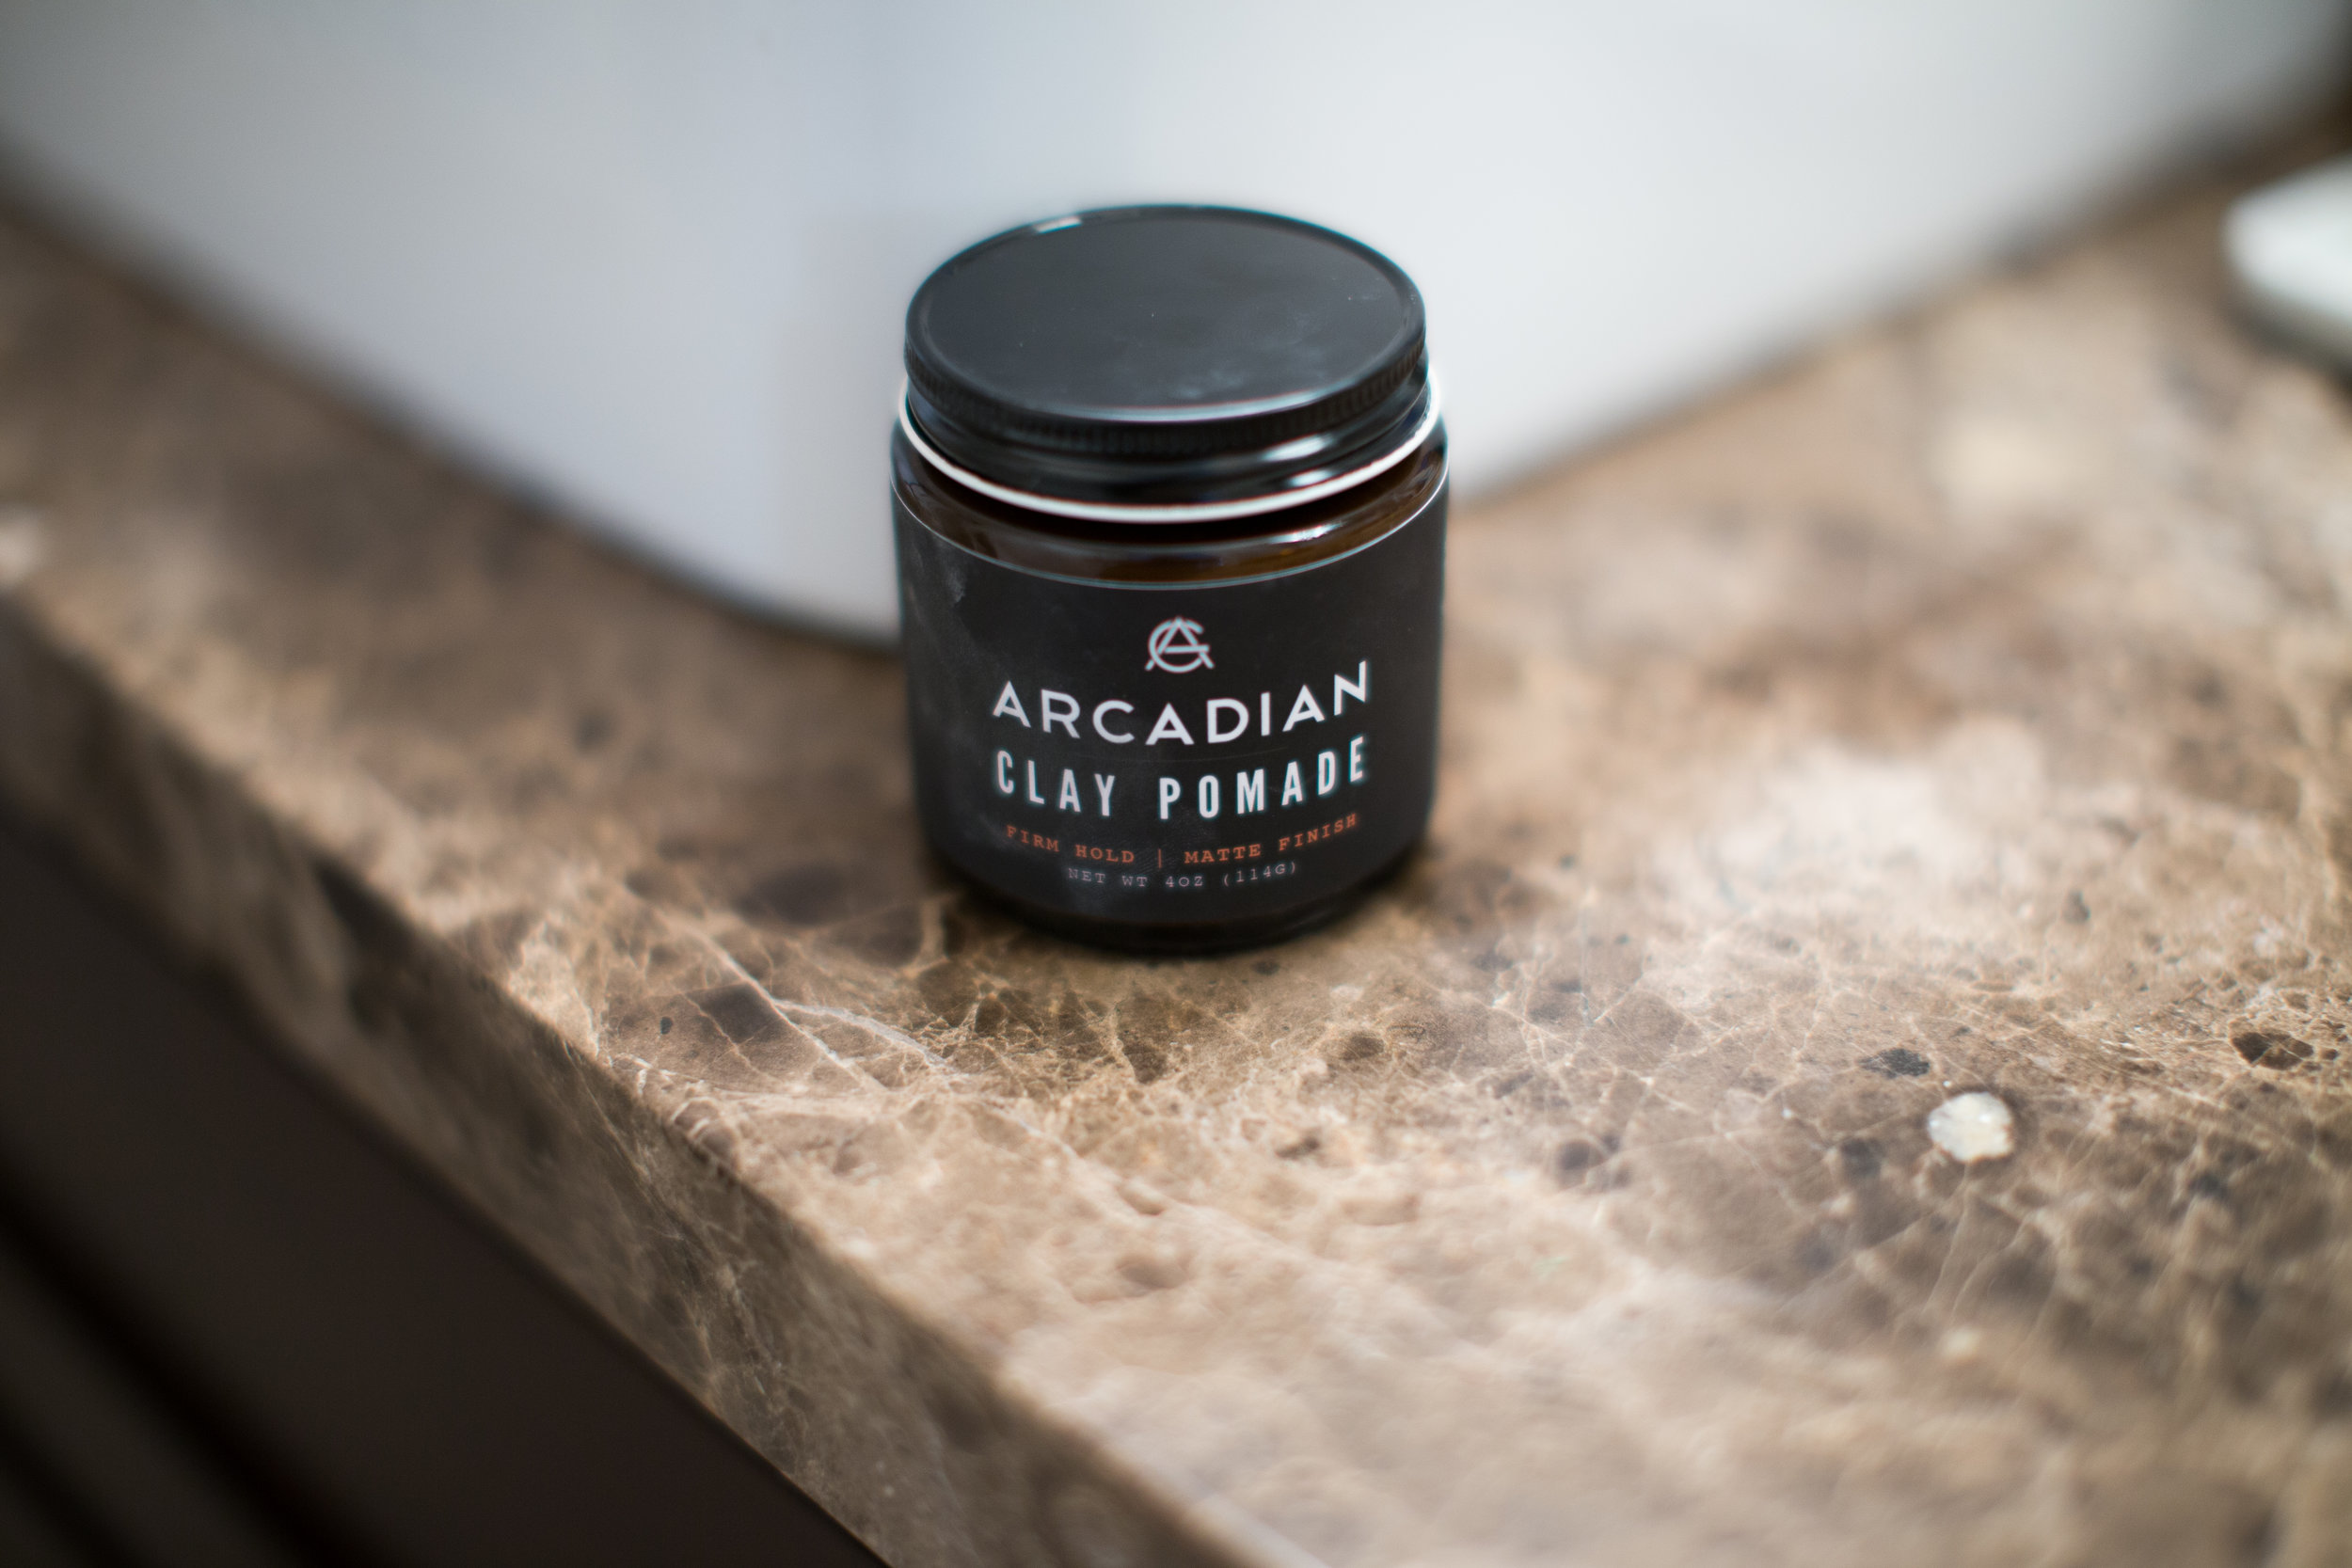 Arcadian Clay Pomade Review by The Pomp